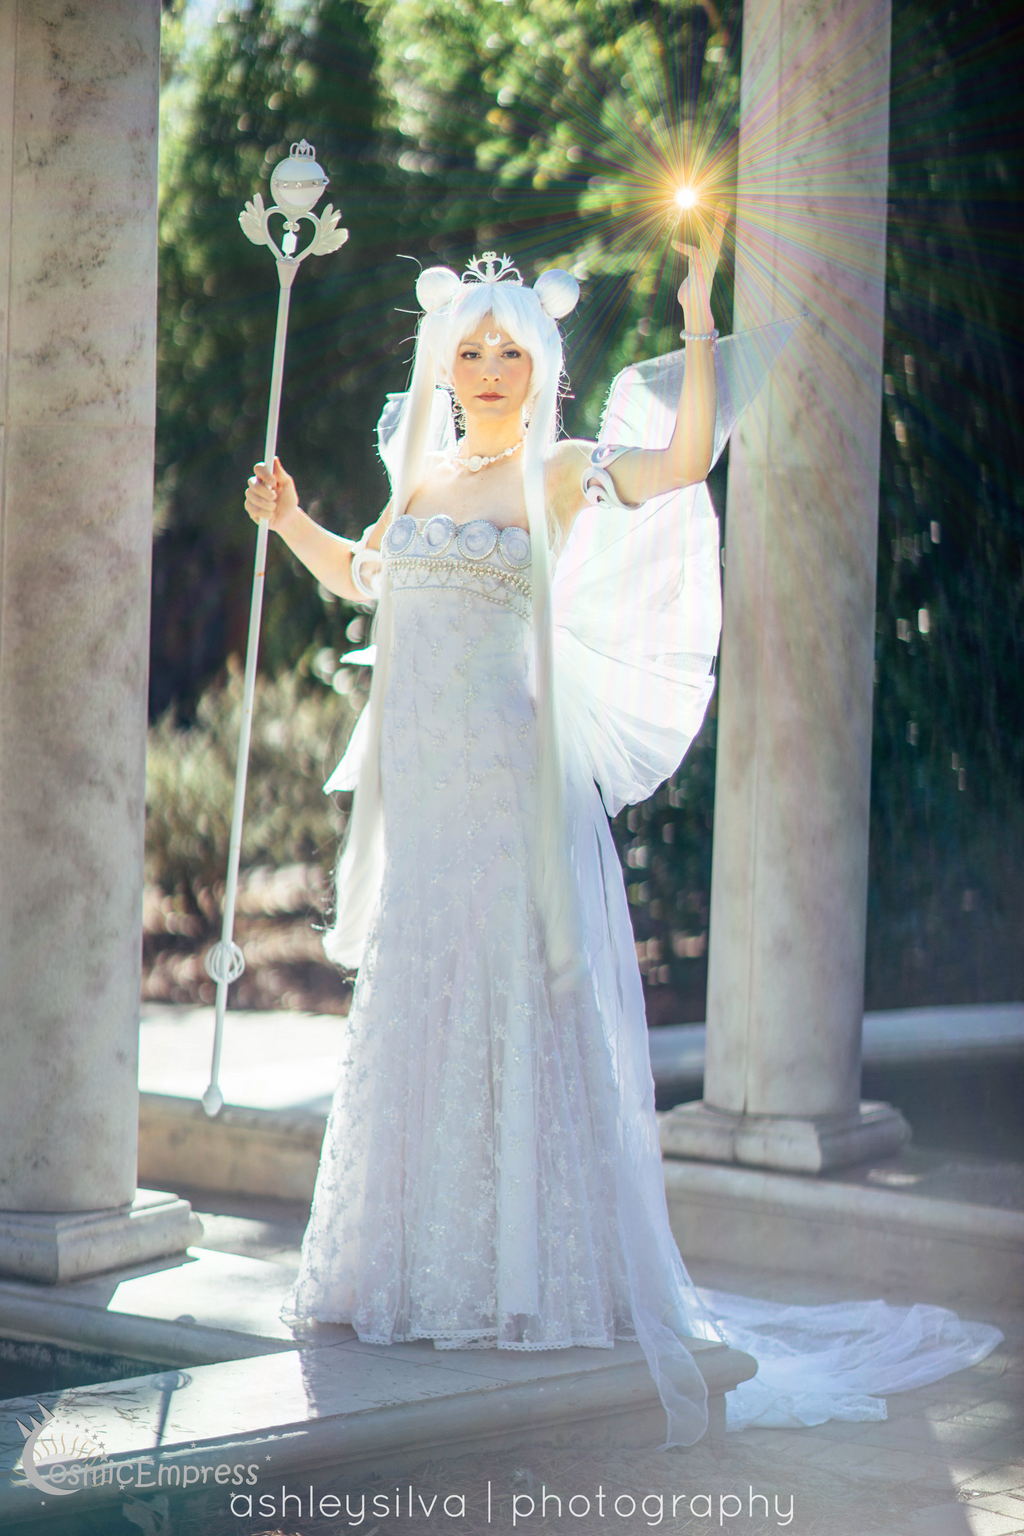 Neo Queen Serenity, Sailor Moon by Cosmic-Empress on DeviantArt